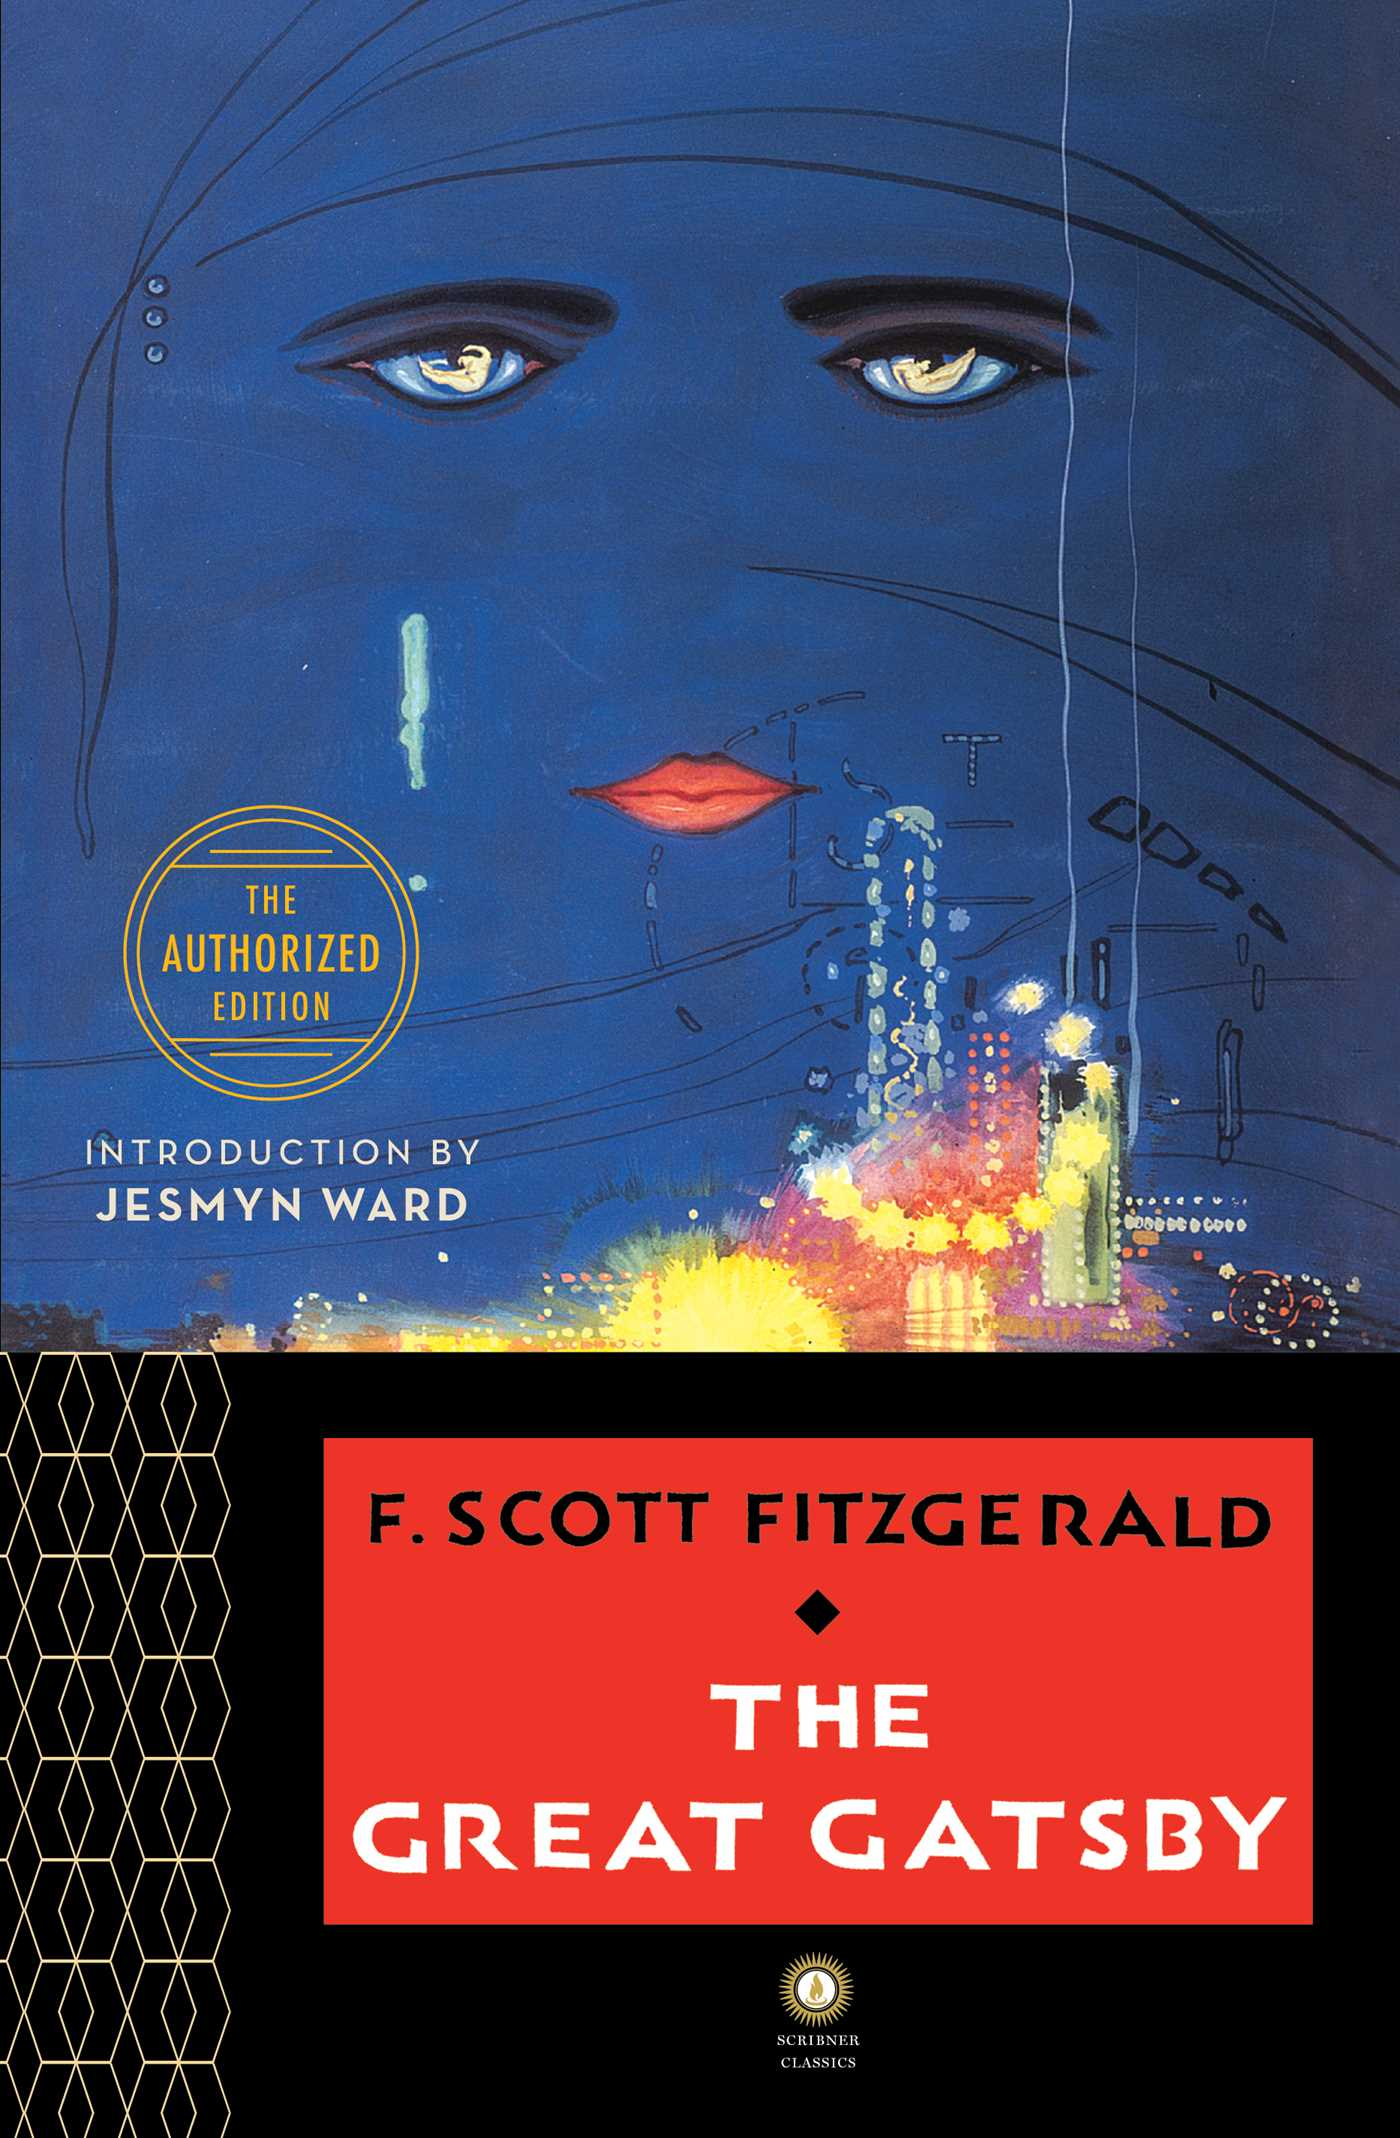 The great gatsby 9780684830421 hr